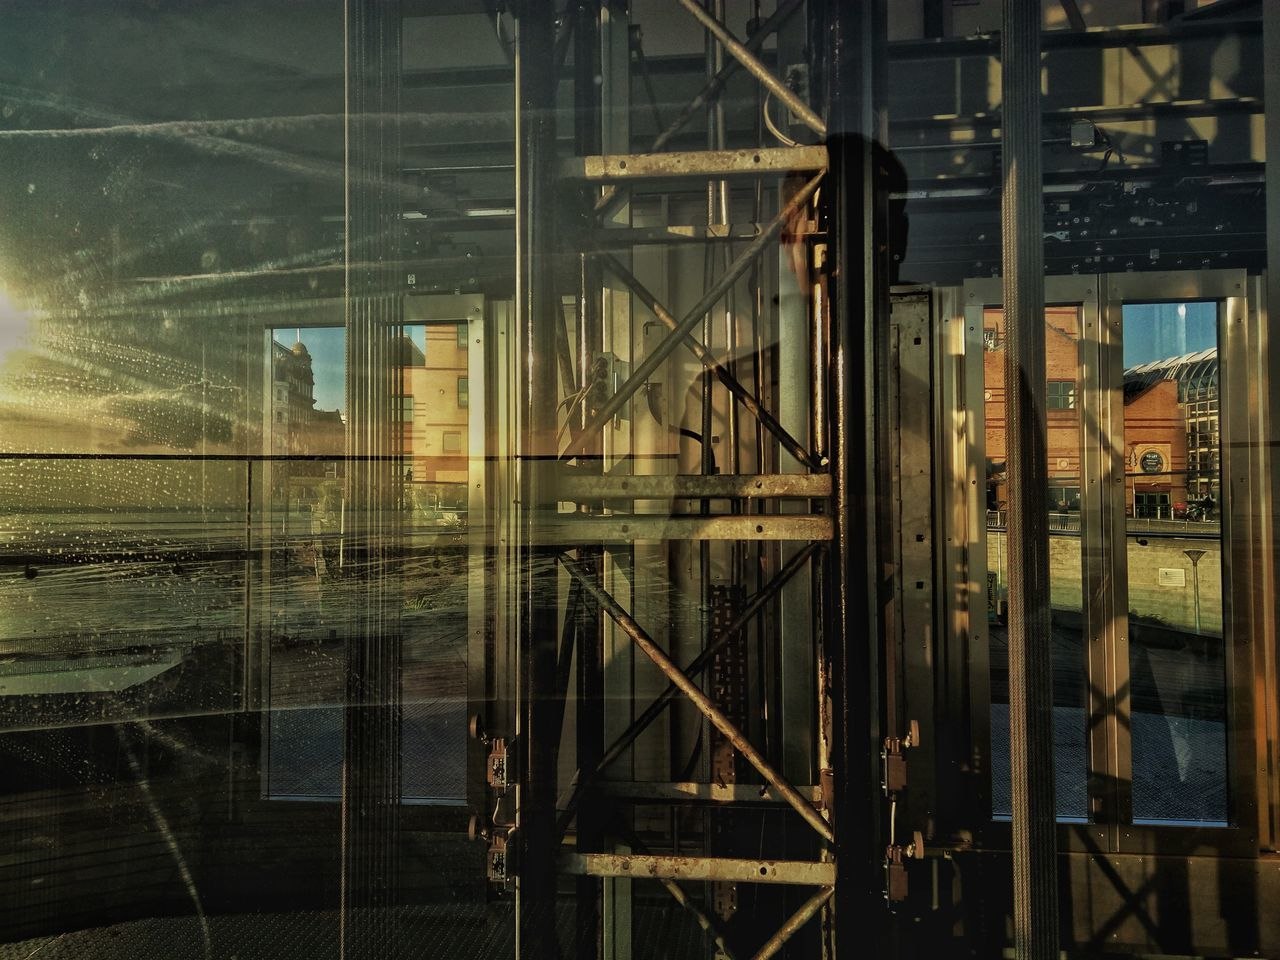 Reflect. Built Structure Architecture Reflection Pier Hill Lift Abstract Machinery Southendonsea Southend Pier Hill Southend Lift Shaft Elevator Elevator Shaft Lift Southend On Sea Reflections